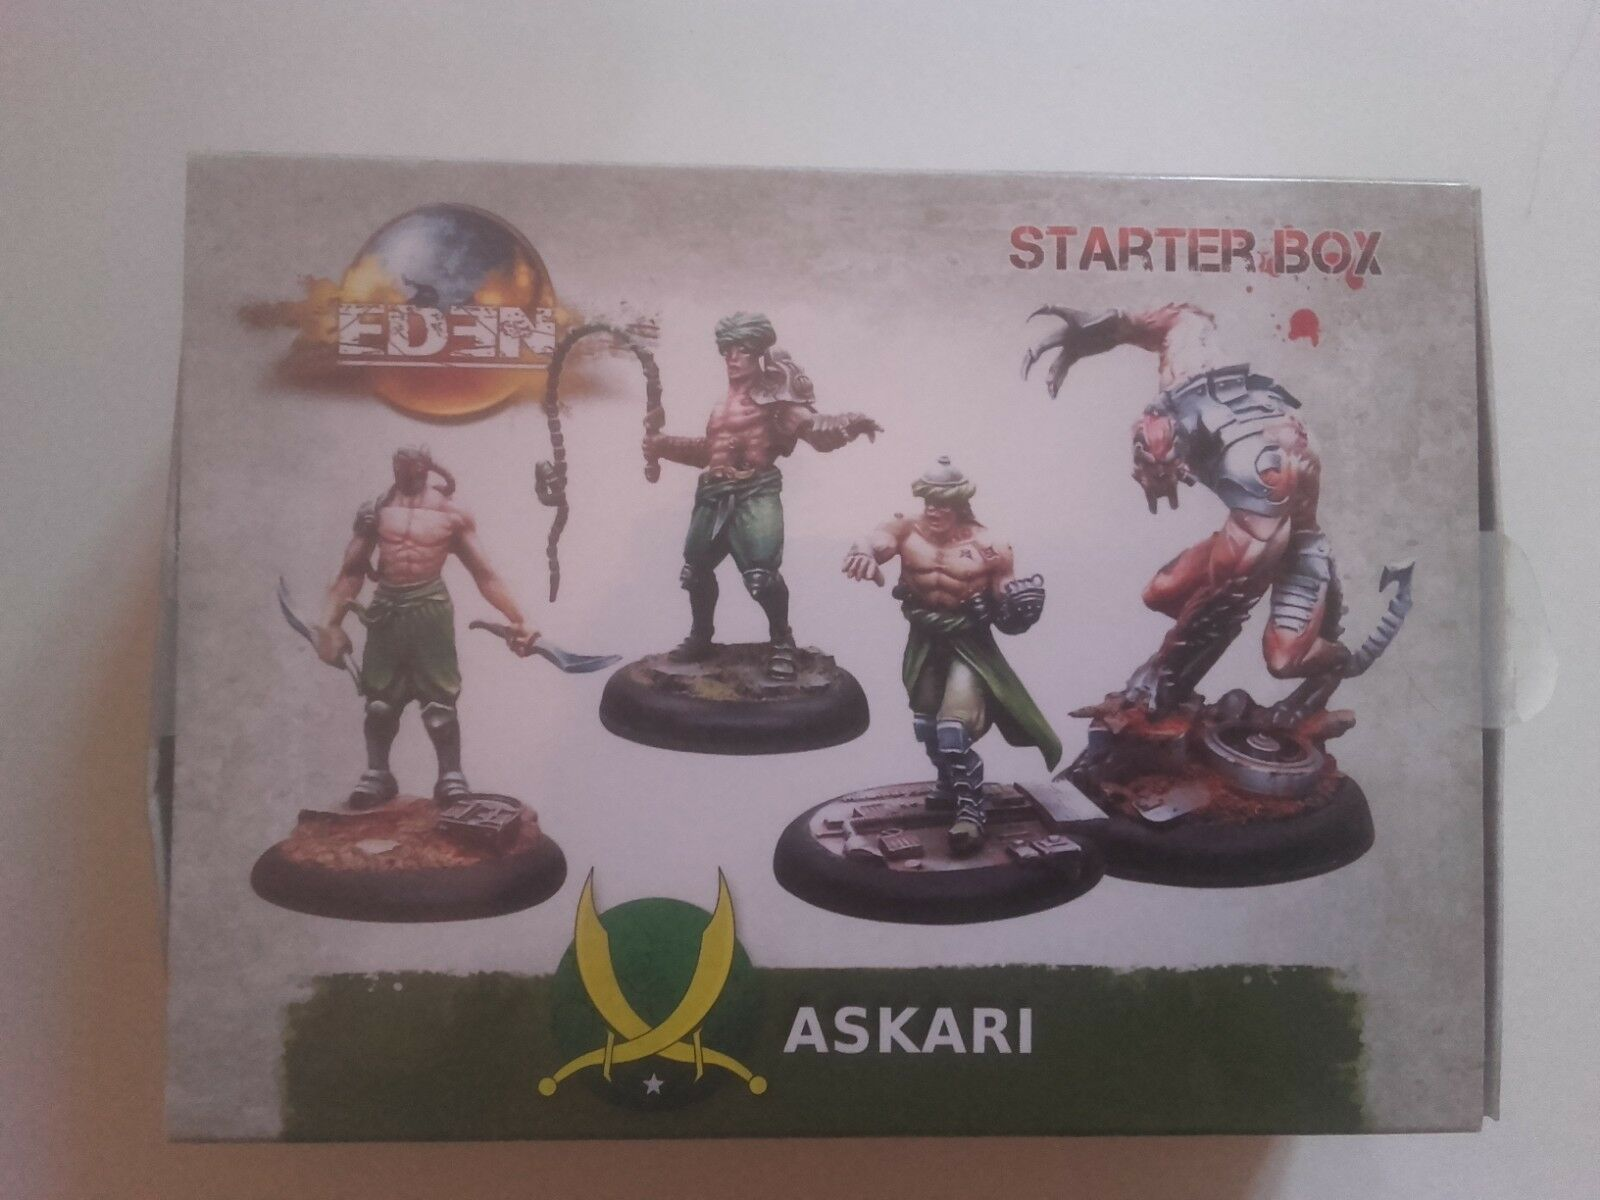 Starter Box Askaris pour Eden Eden Eden the Game, Happy Games Factory Neuf 1a8d00